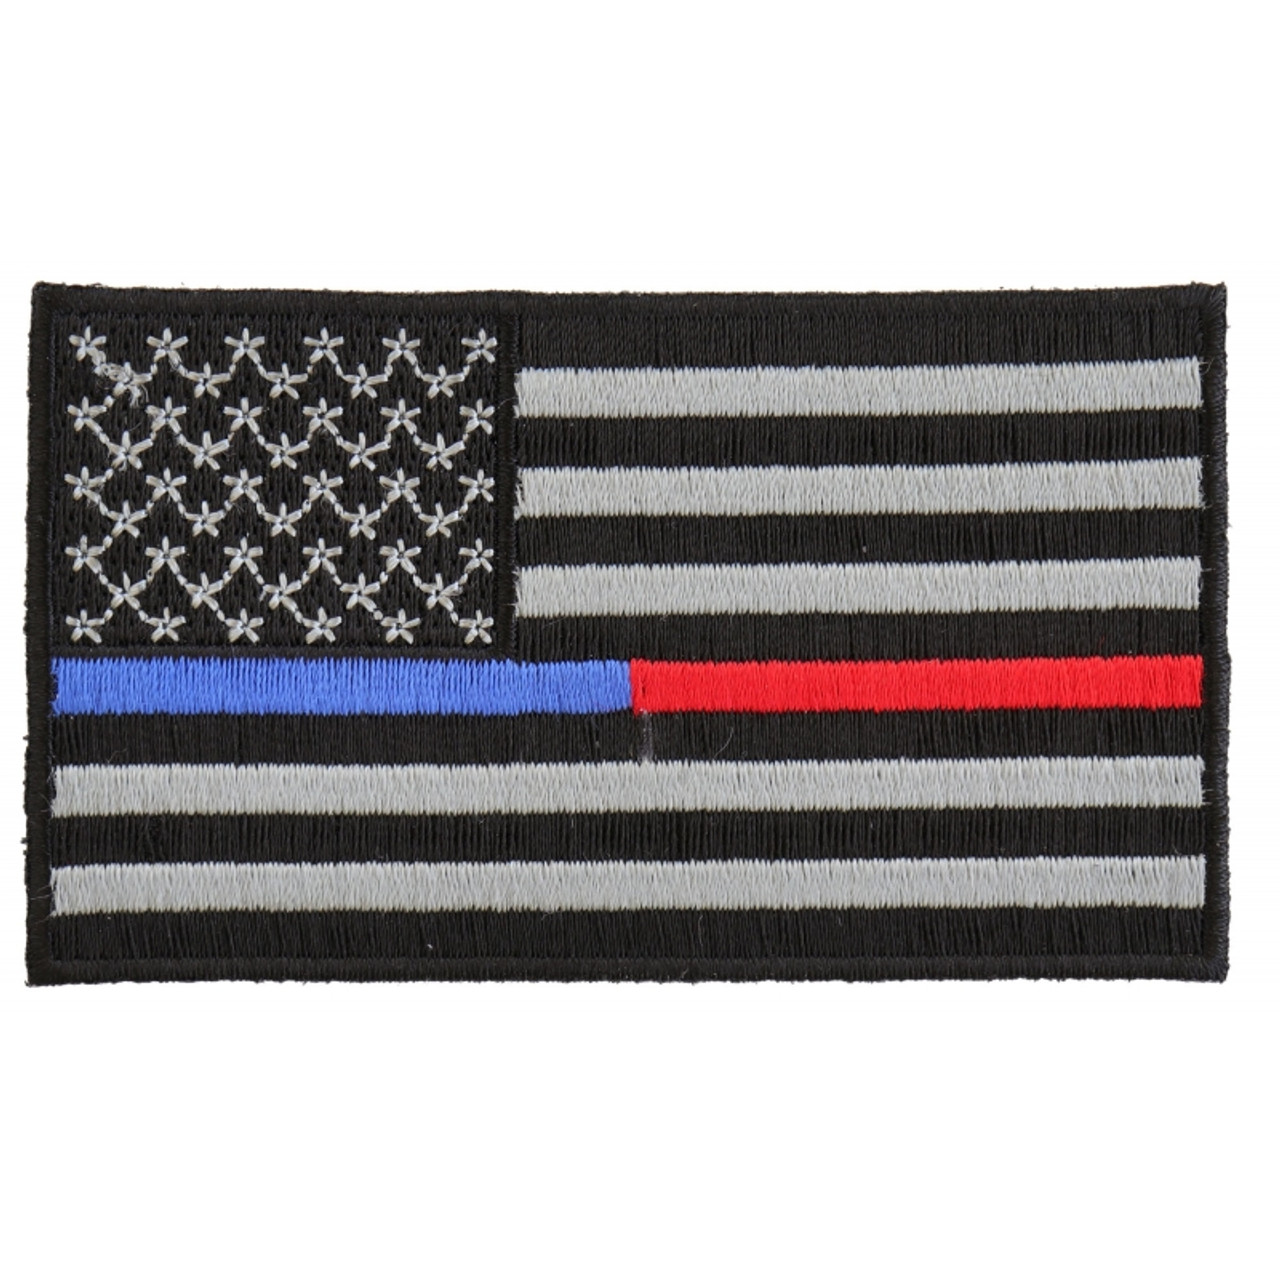 Red Line American Flag >> Thin Blue And Red Line American Flag